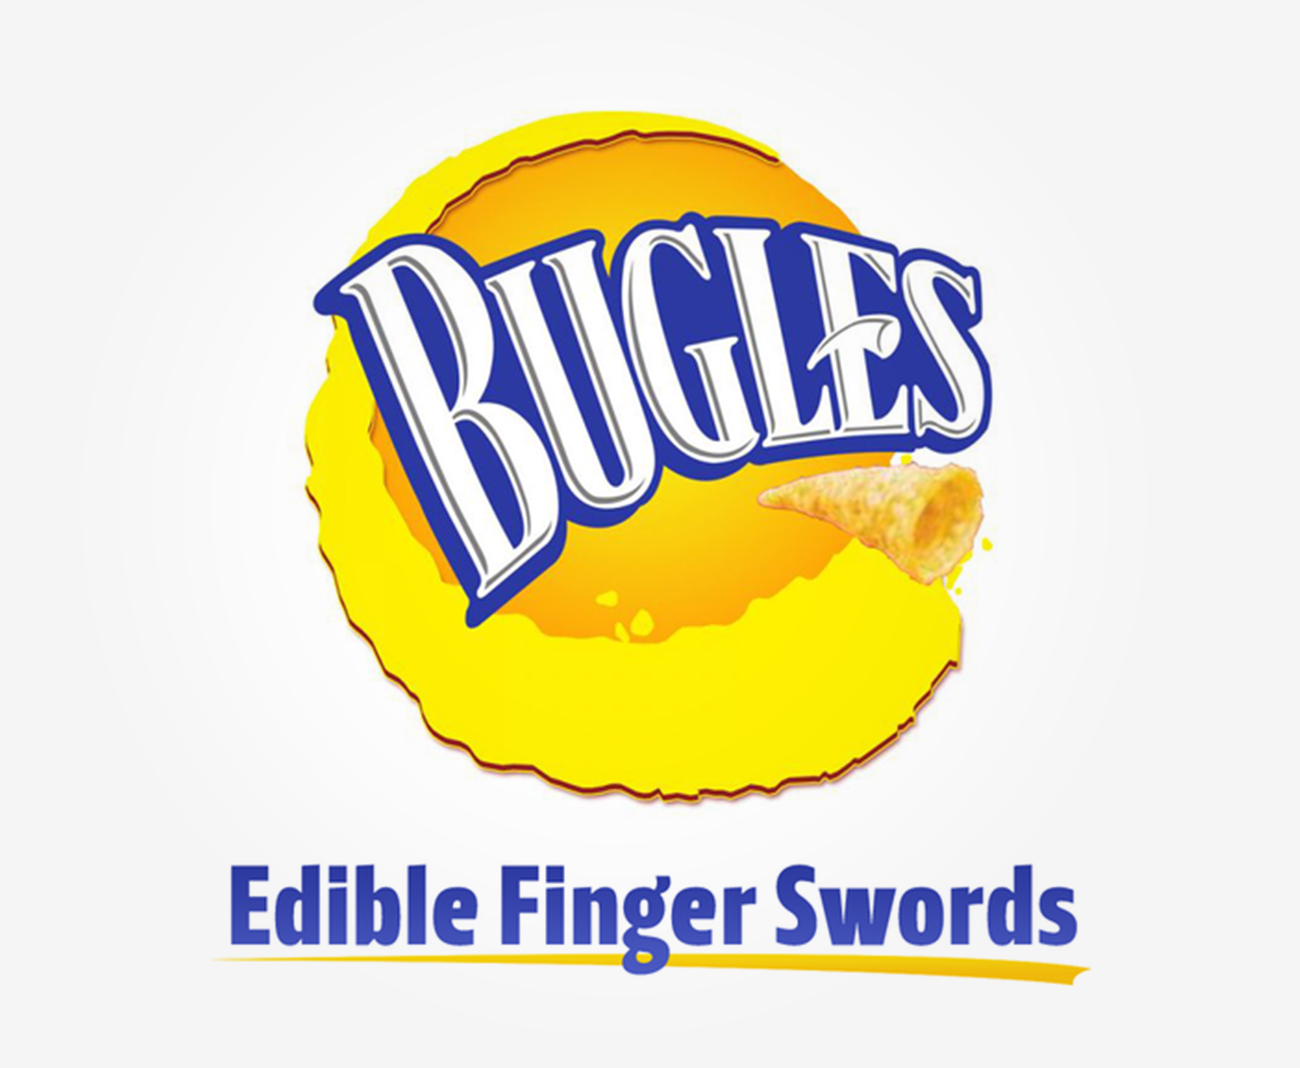 bugles slogan